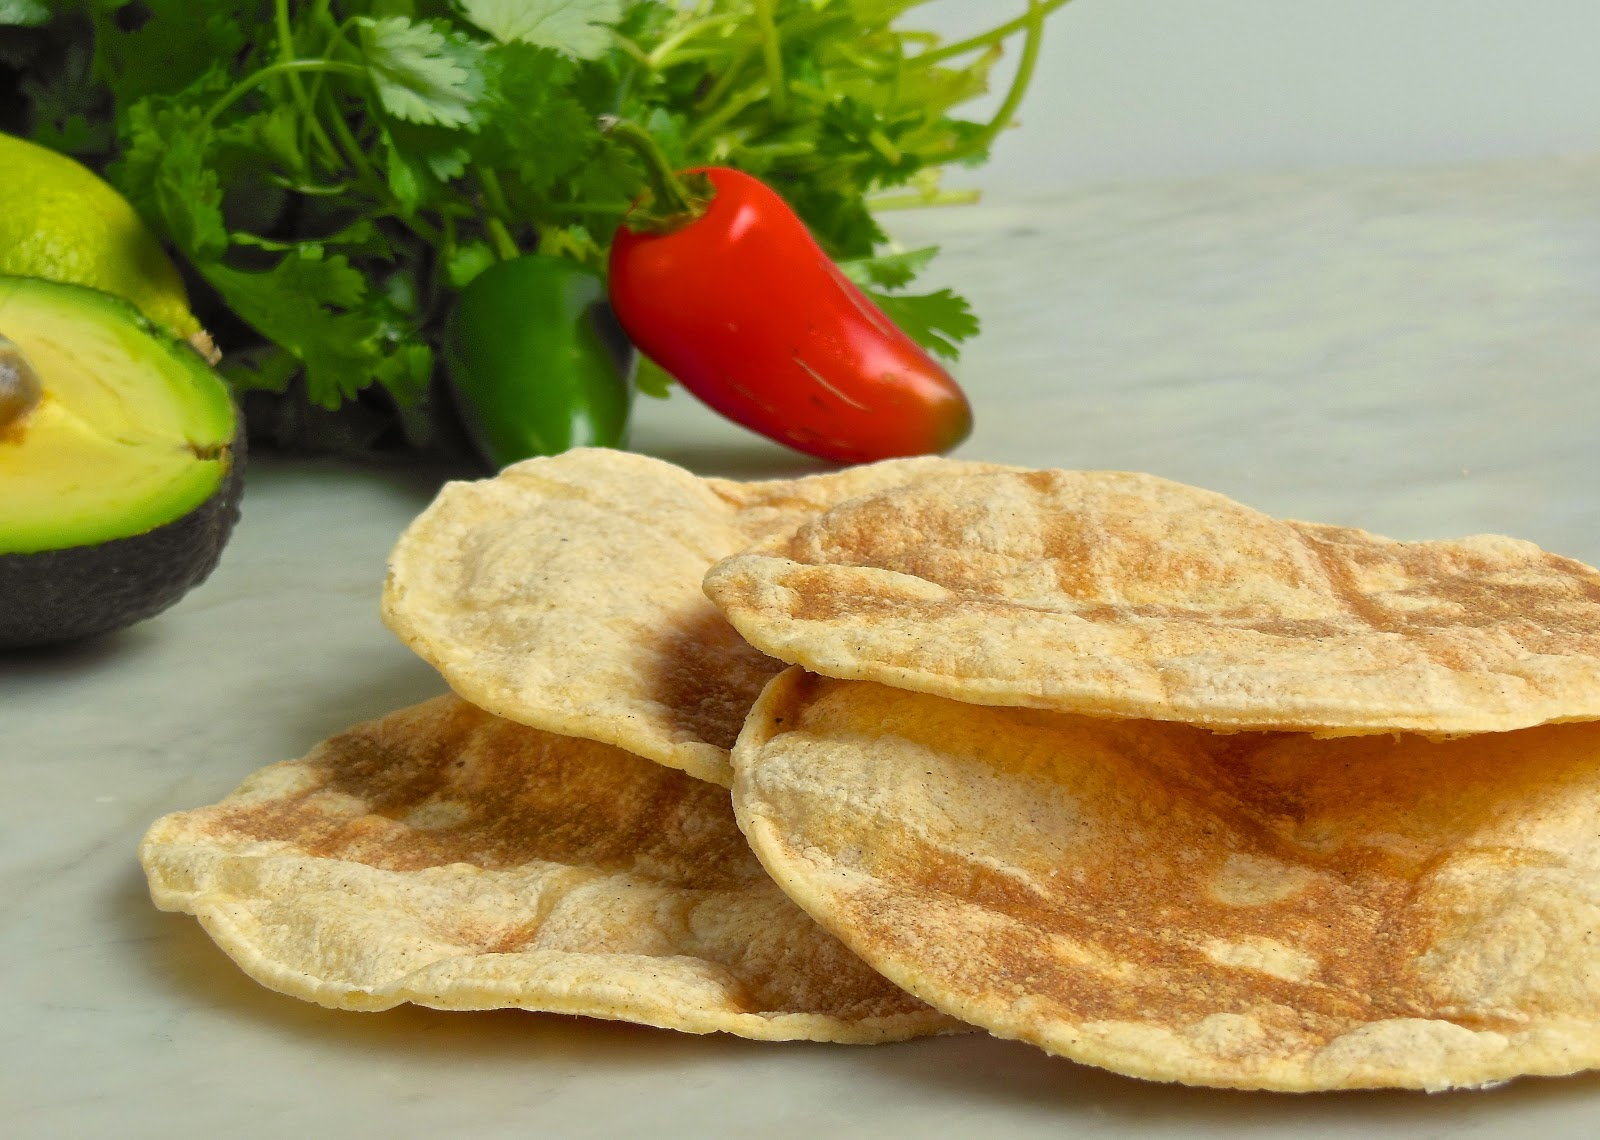 how to fry tortillas to make tostadas